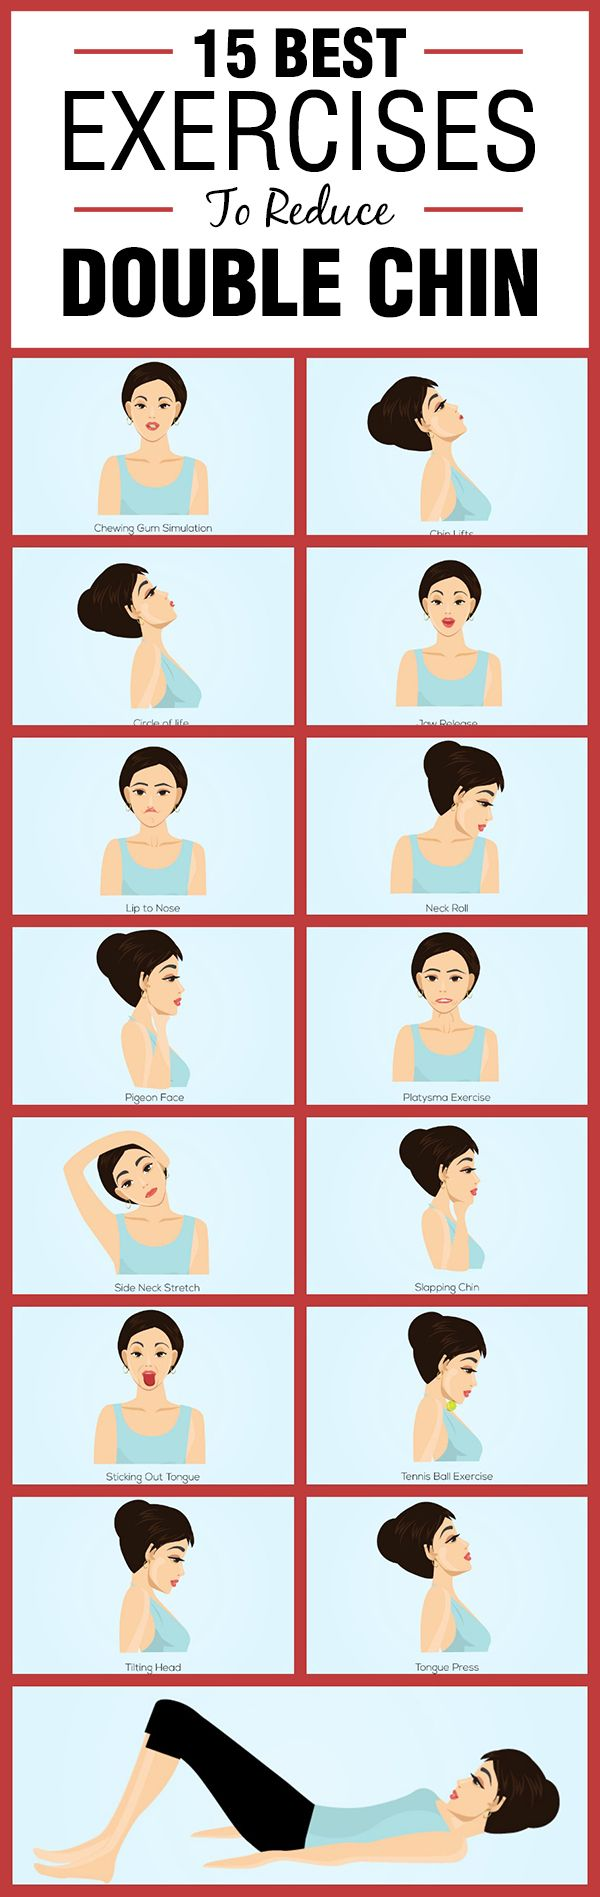 15 Best Exercises To Reduce Double Chin